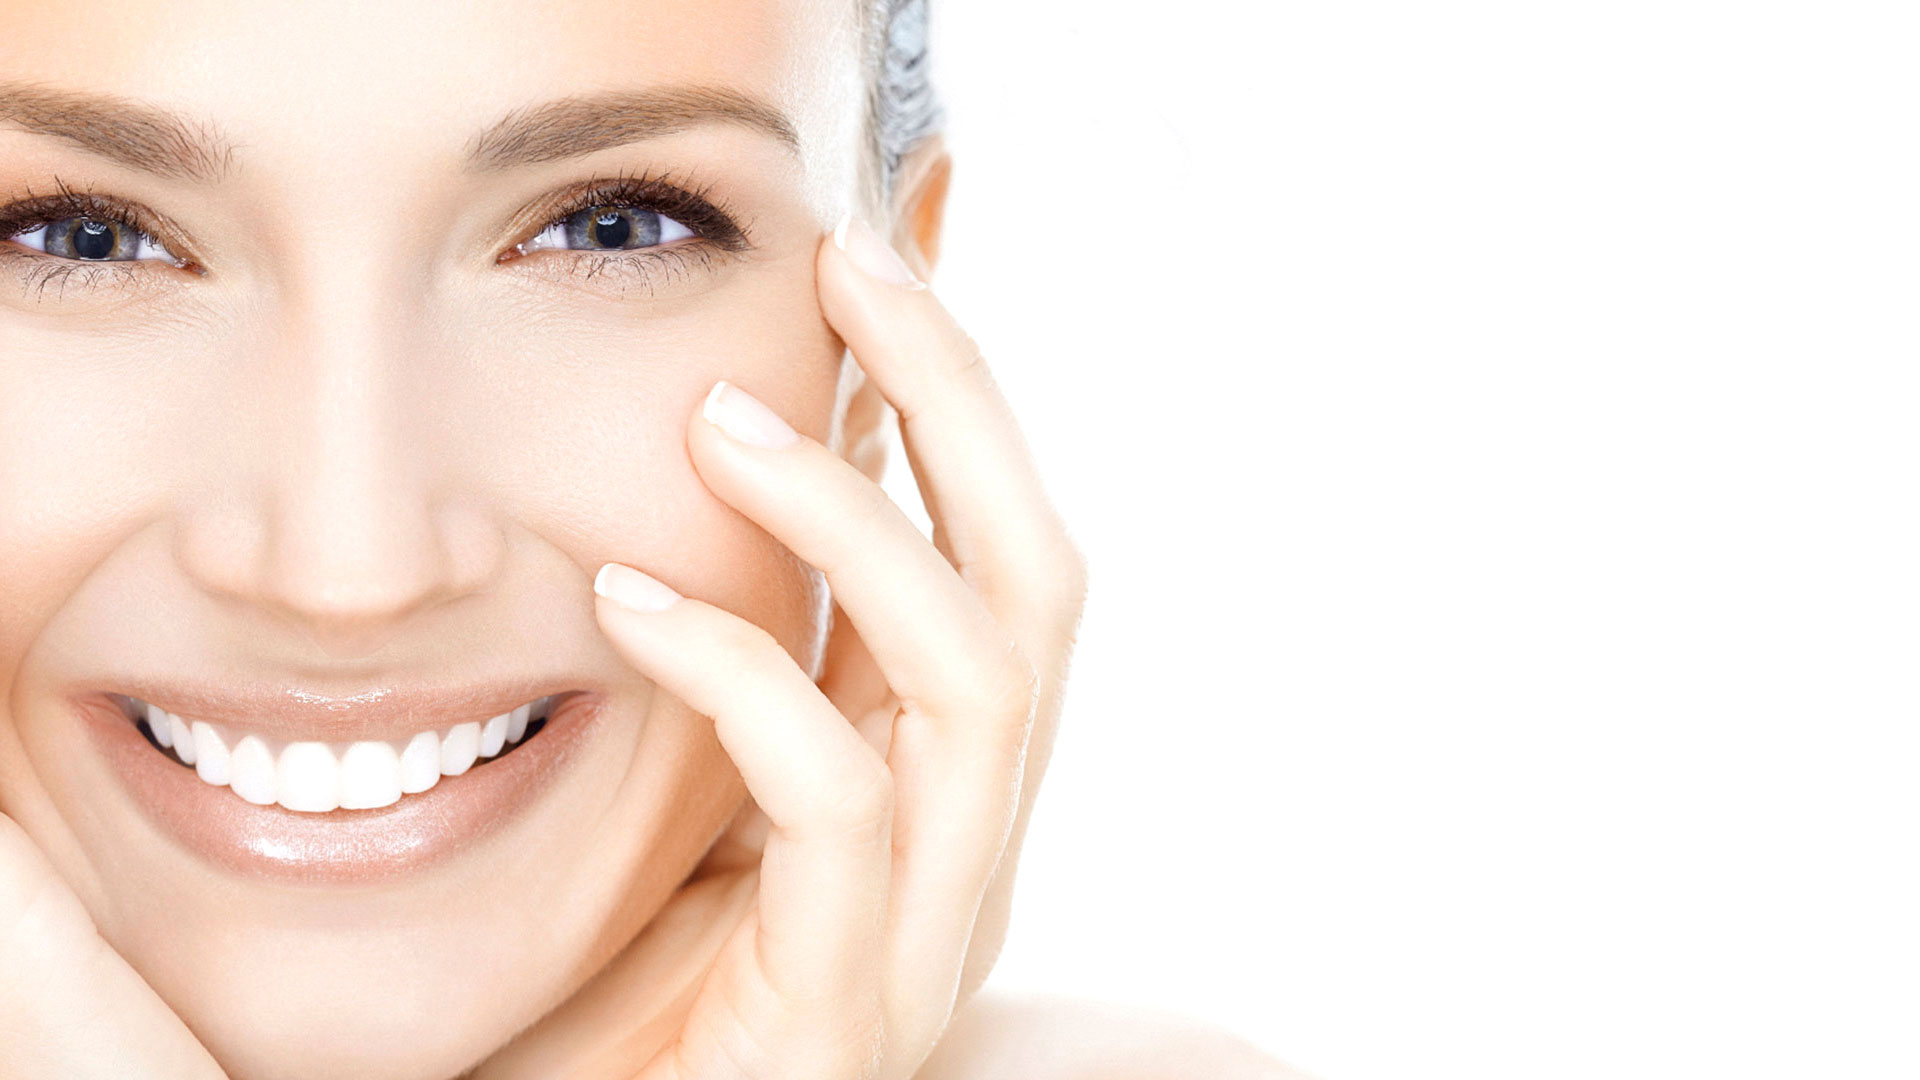 d9f10312a82 ORGANIC FACIALS - Every 27 to 37 days your amazing skin regenerates  completely with fresh,